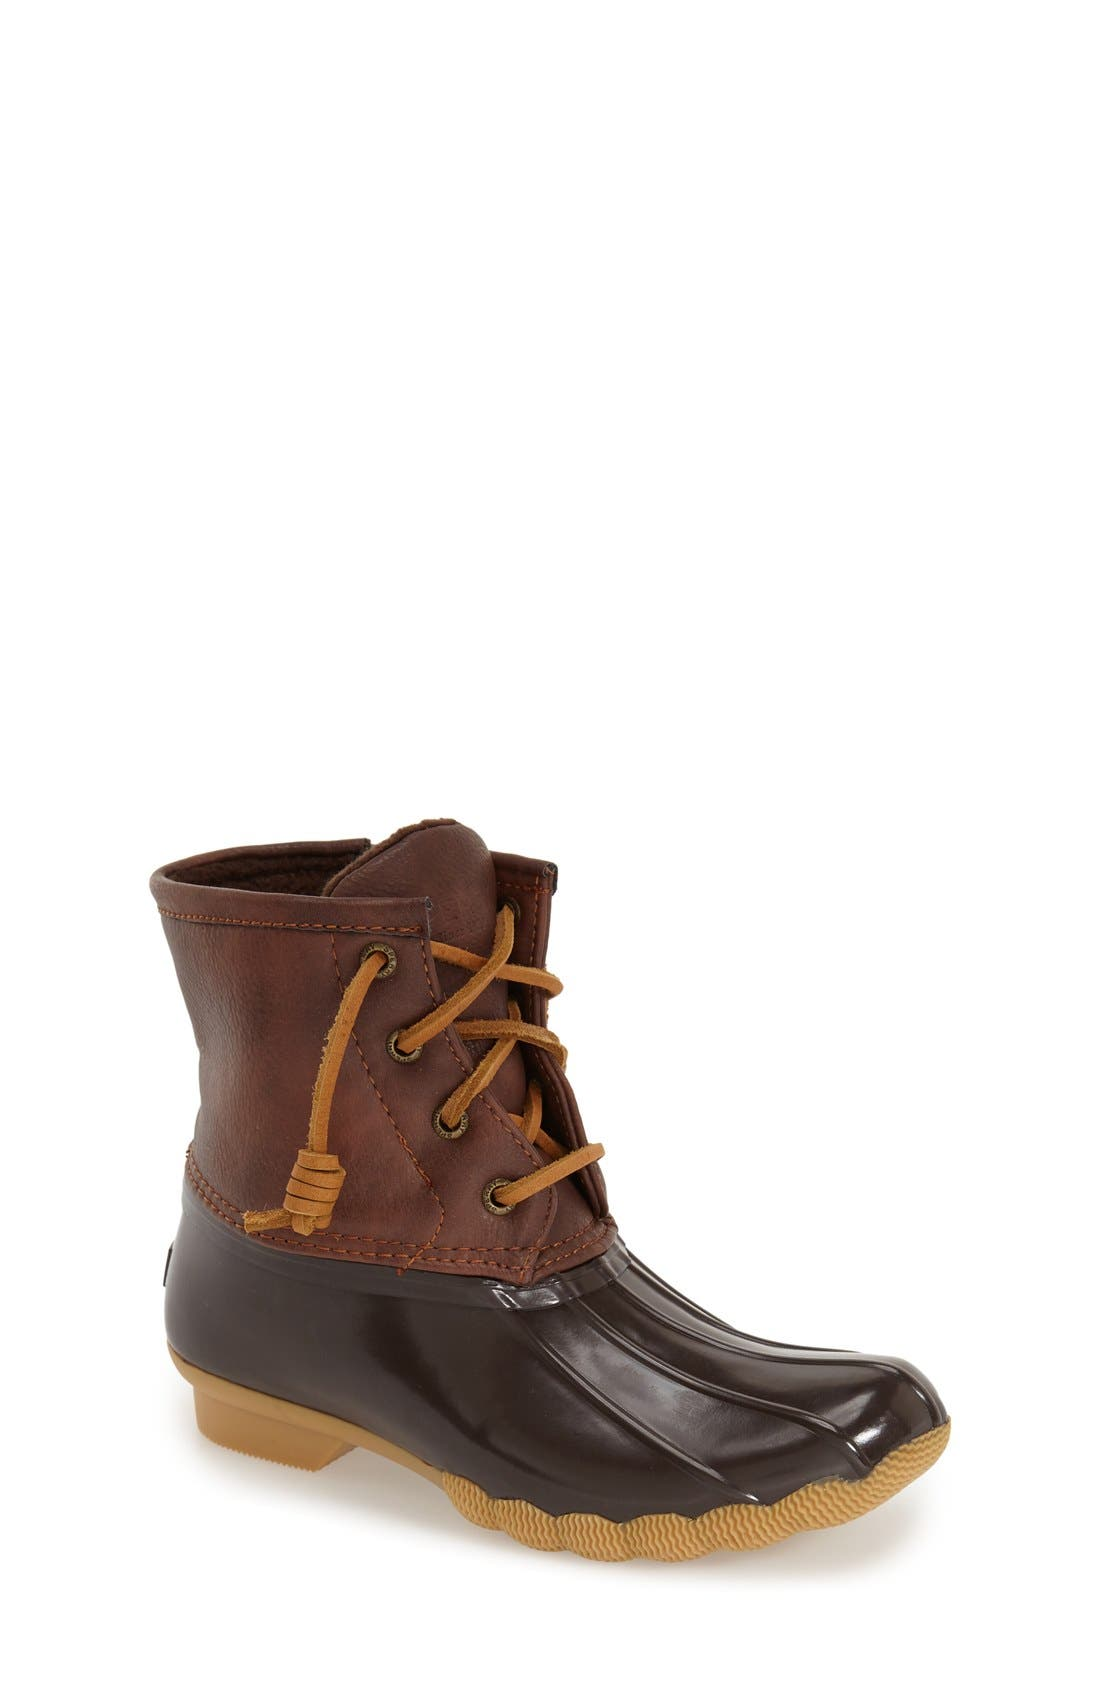 Sperry Kids Saltwater Duck Boot (Toddler, Little Kid & Big Kid)